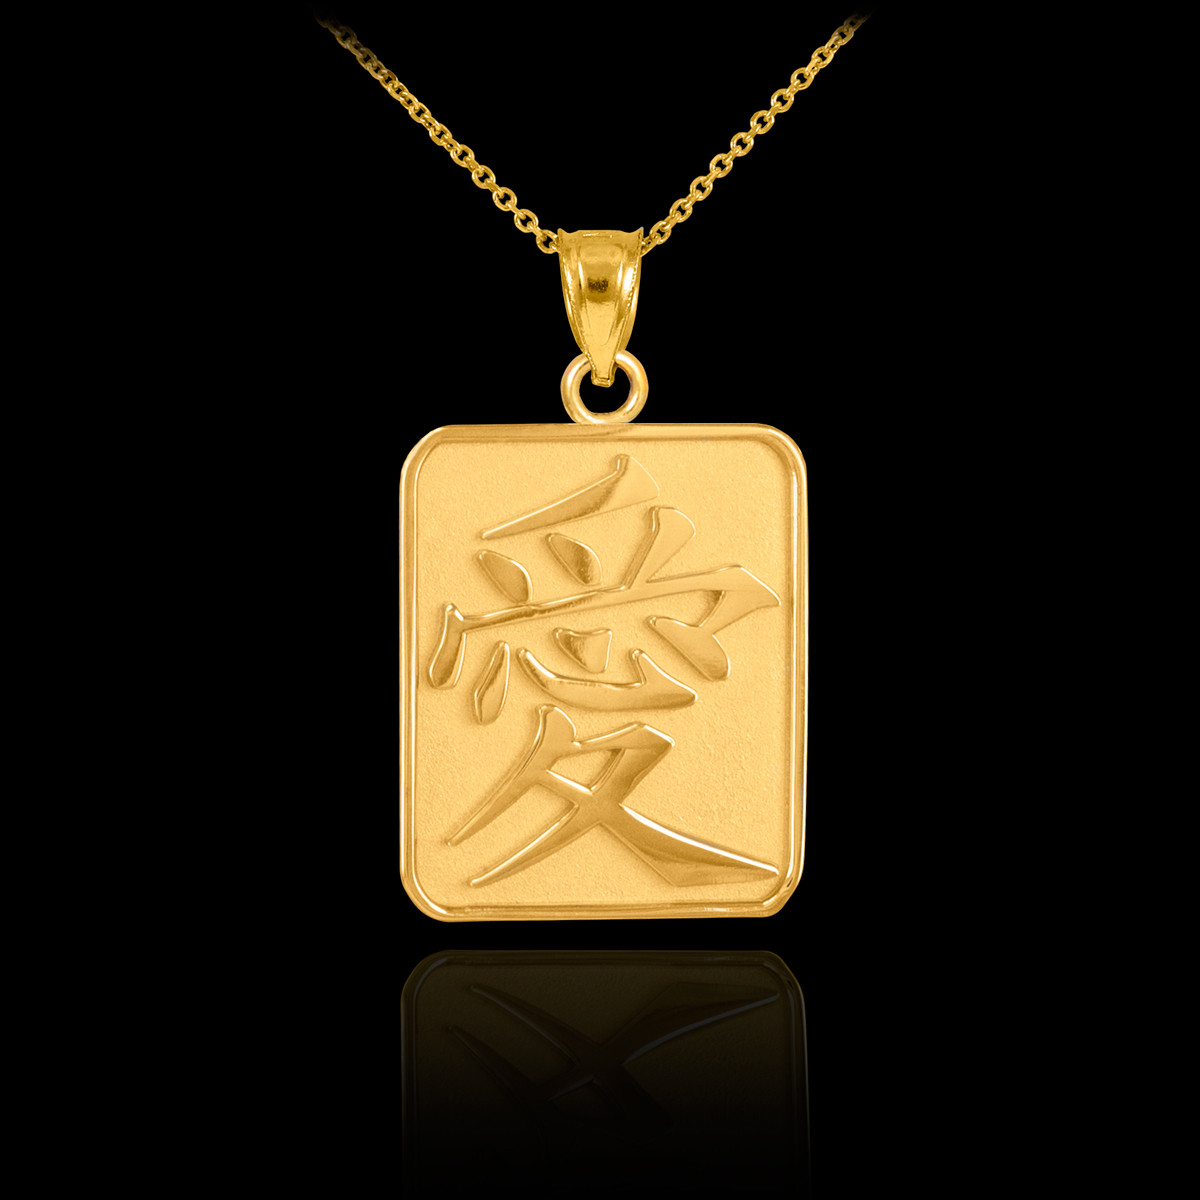 Solid Gold Chinese Love Symbol Square Medallion Pendant Necklace